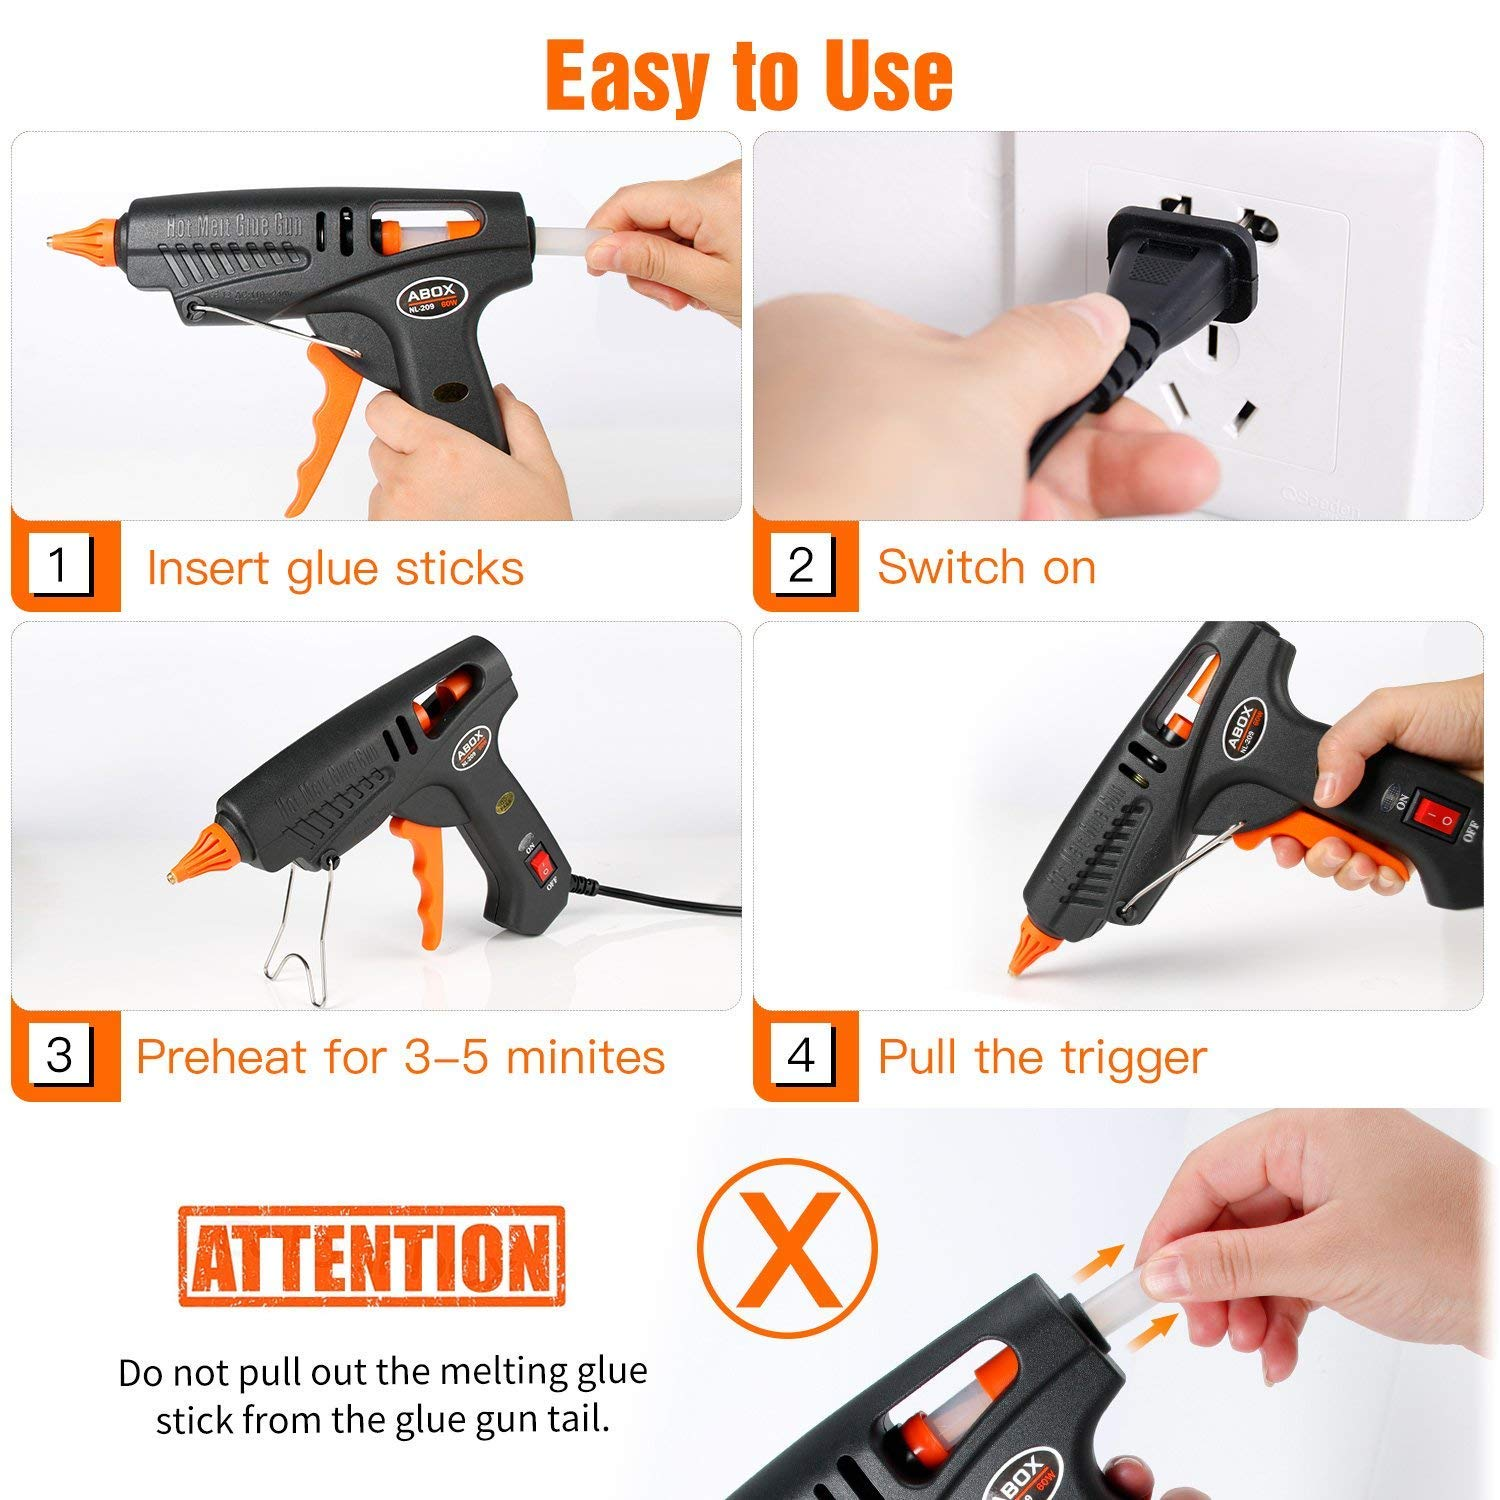 Hot Glue Gun, ABOX 60W Thermostat Hot Melt Glue Gun, Rapid Preheating with PTC Heating Technology,15 Pcs Premium Glue Sticks,Copper Nozzle and ON-Off Switch, DIY Arts &Crafts Projects, Quick Repairs by GooBang Doo (Image #6)